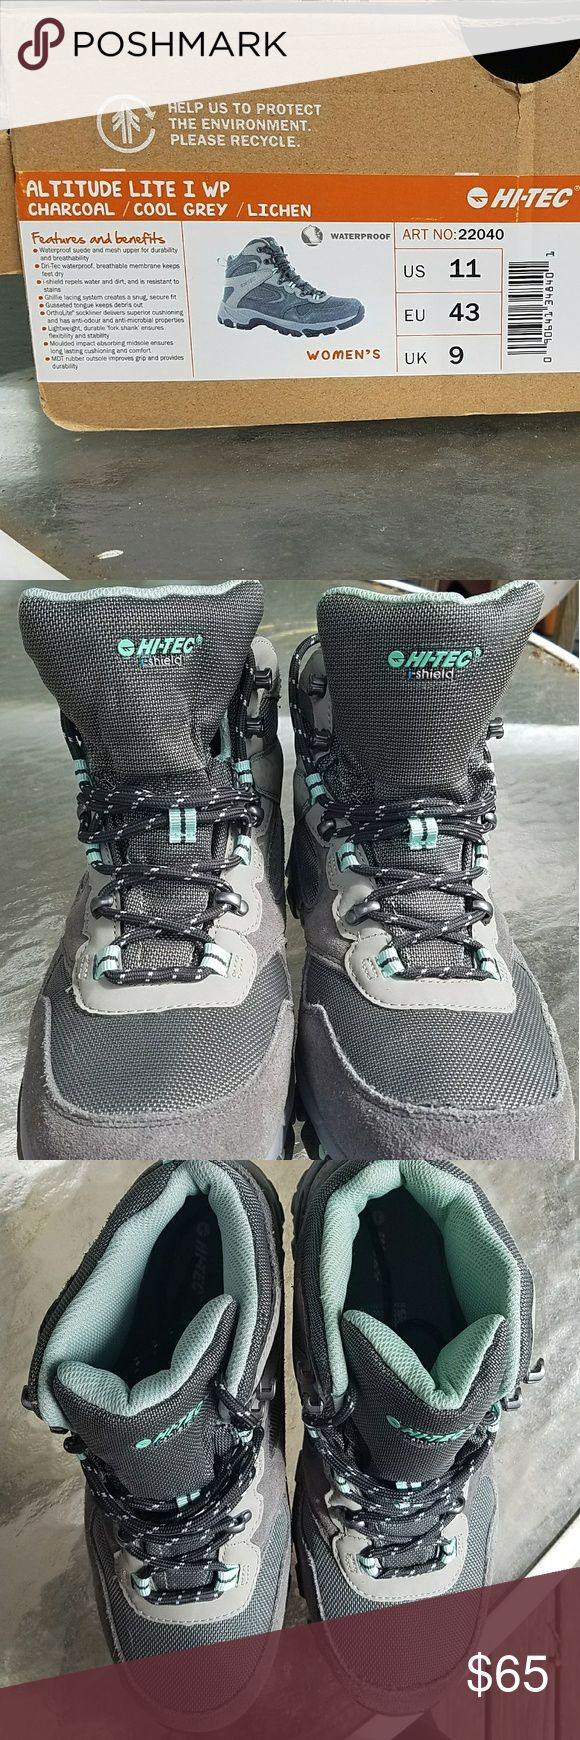 HI TEC Hiking boots BRAND NEW STILL IN BOX HIKING BOOTS Hi-Tec Shoes Lace Up Boots